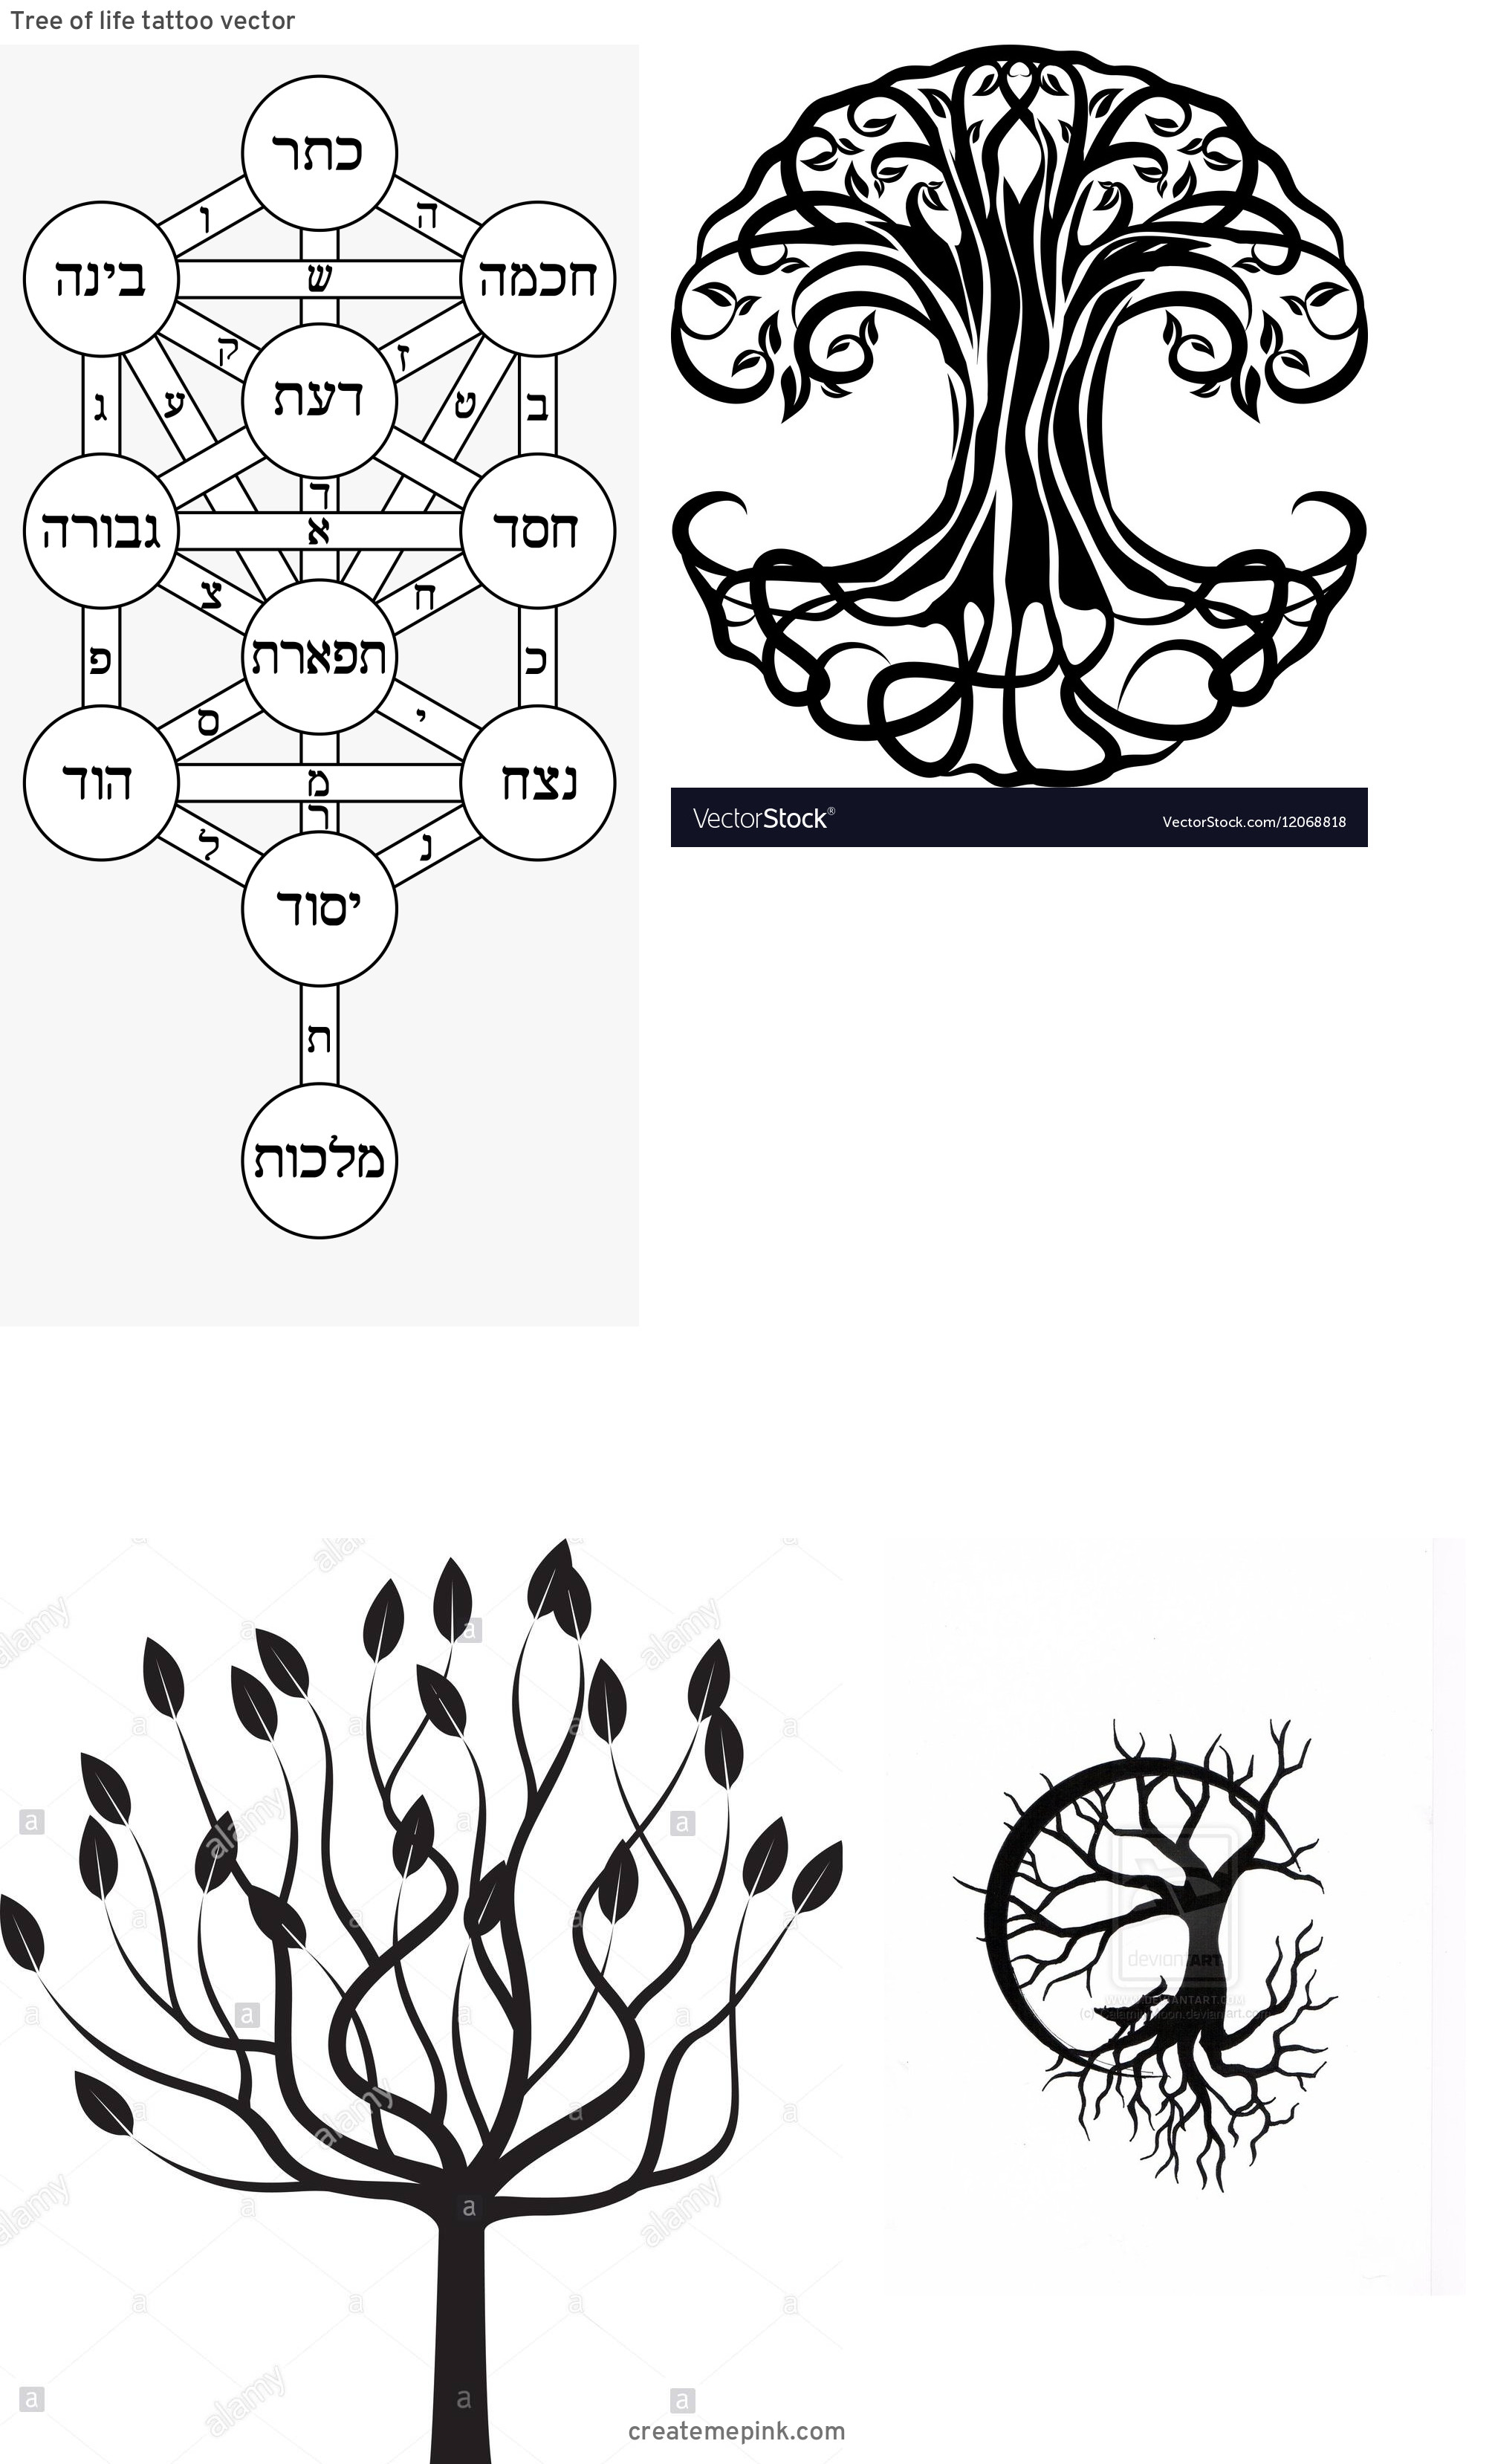 Vector Images Black Tree Of Life: Tree Of Life Tattoo Vector